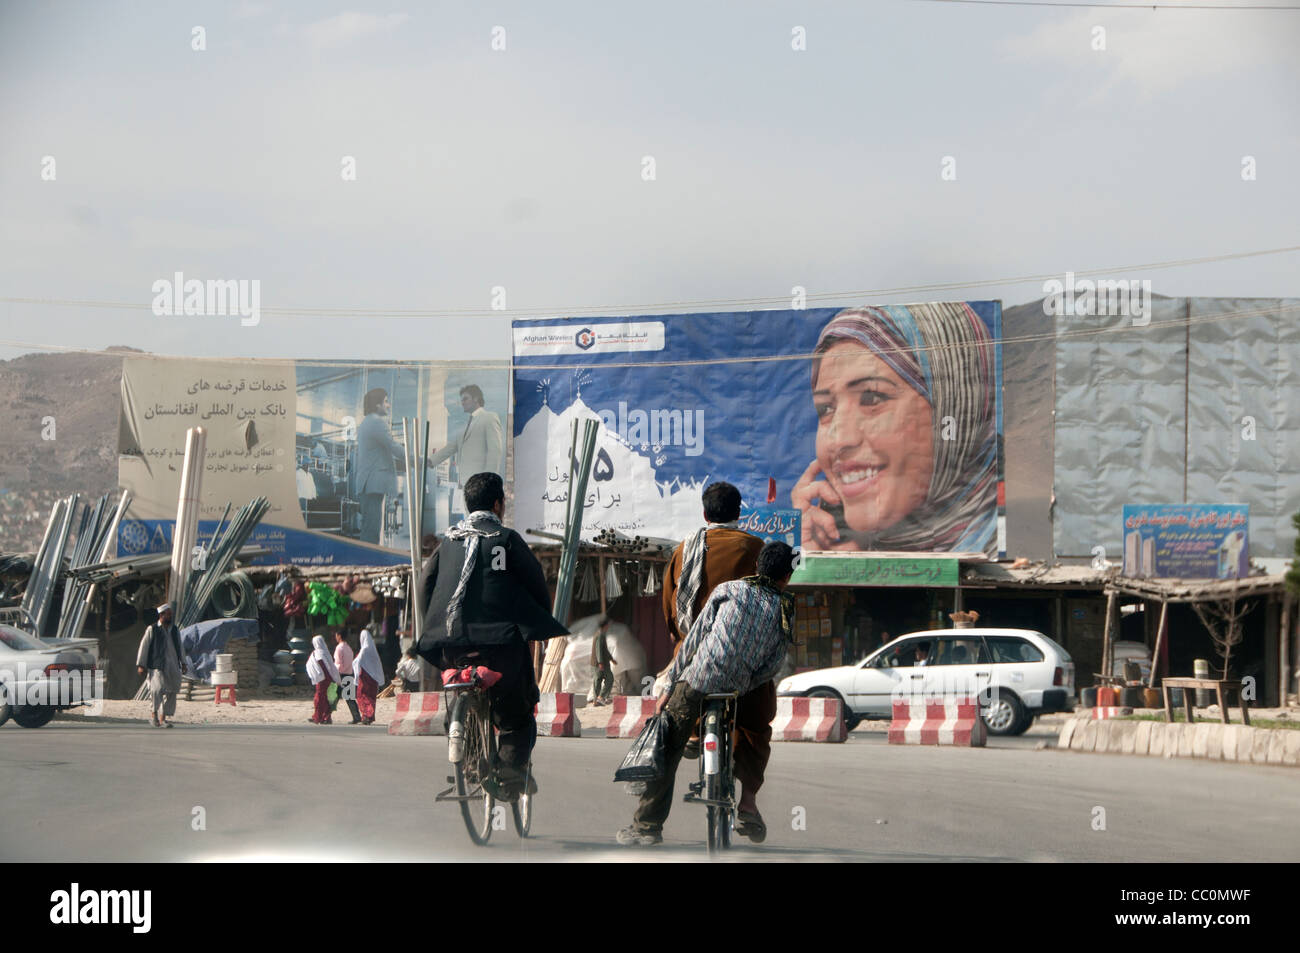 Kabul. Advert for mobile phone, using a photo of a woman. - Stock Image